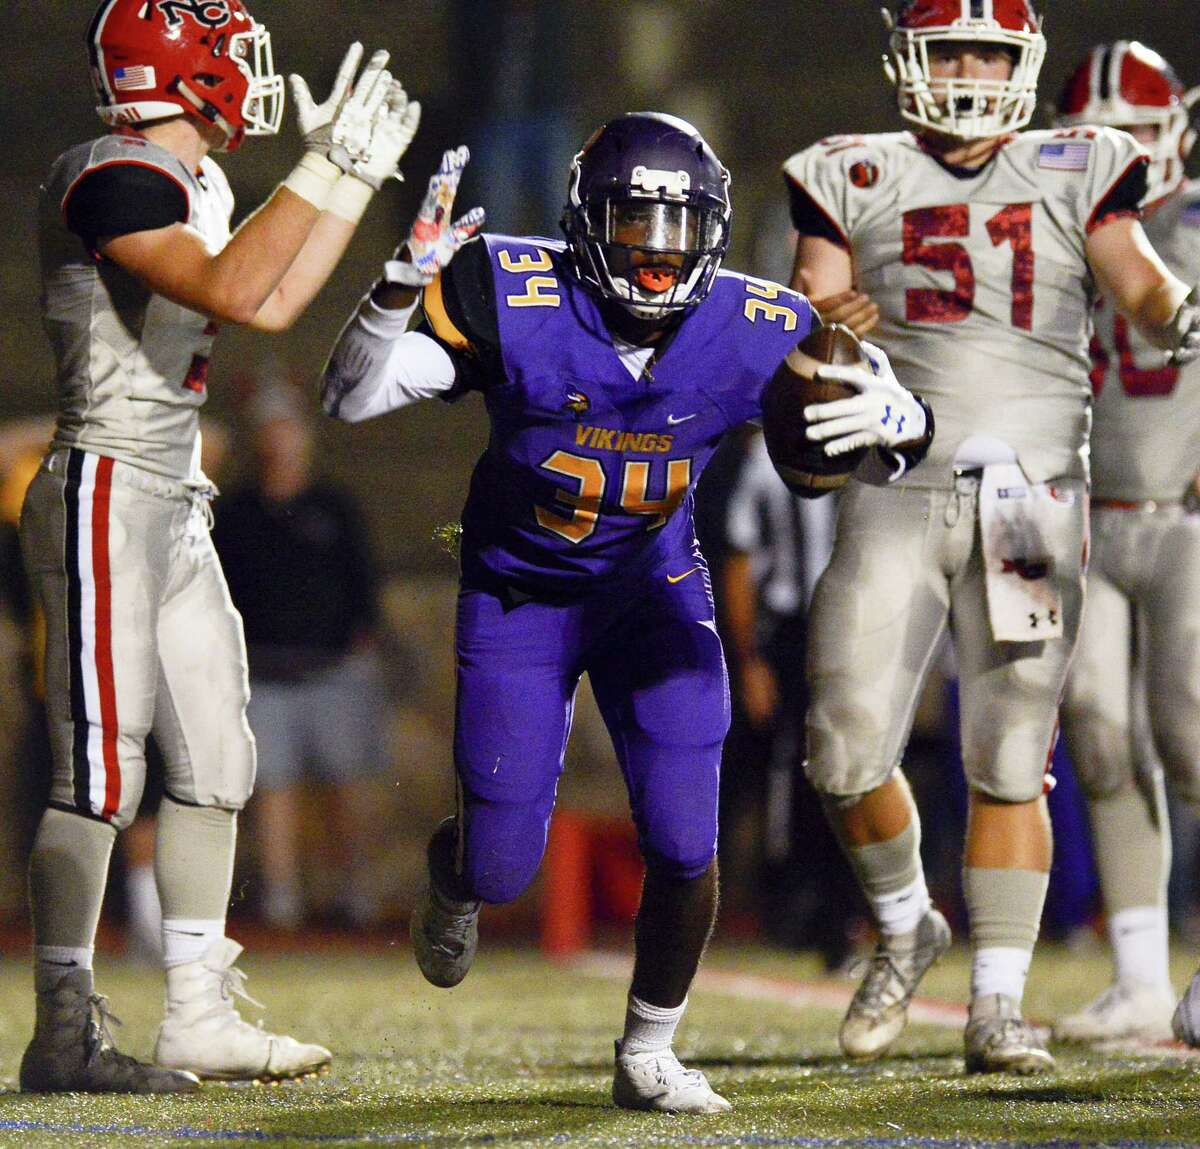 Westhill Nicholas Nunes celebrates a Viking touchdown against New Canaan to end the first half in a FCIAC football game at Boyle Stadium in Stamford, Connecticut on Thursday, Sept. 28, 2017.